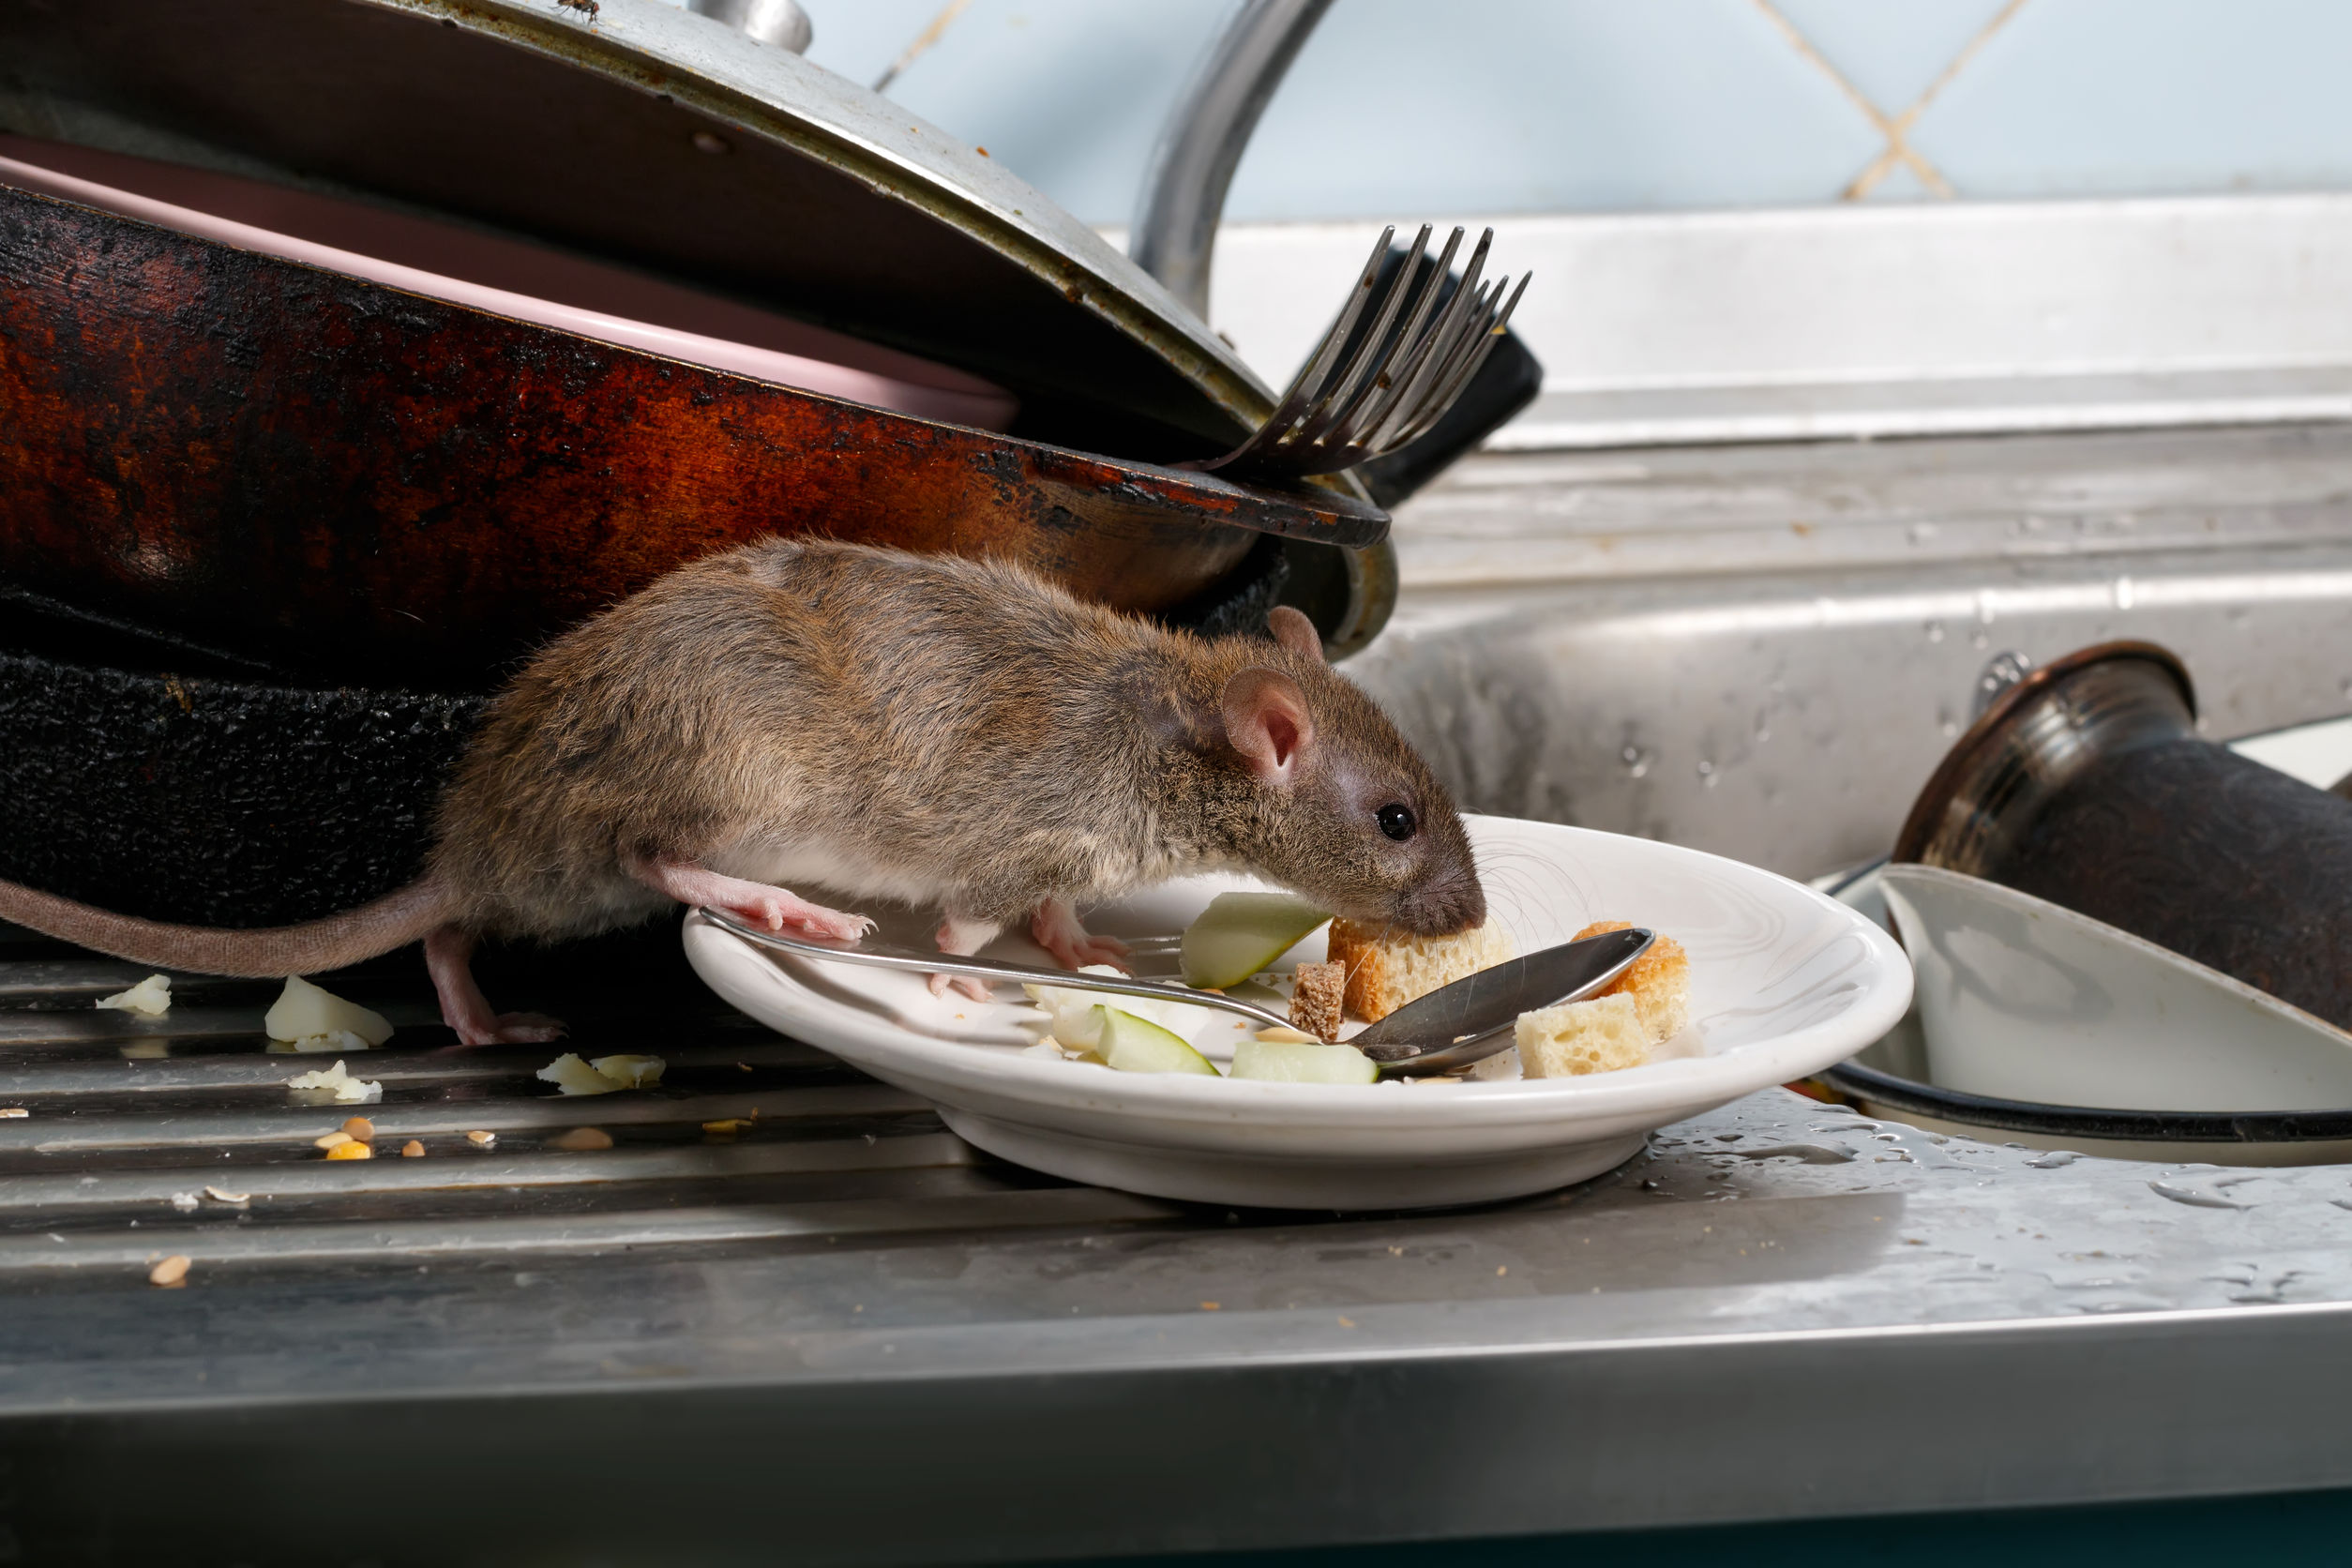 rat-bpca-food-public-health